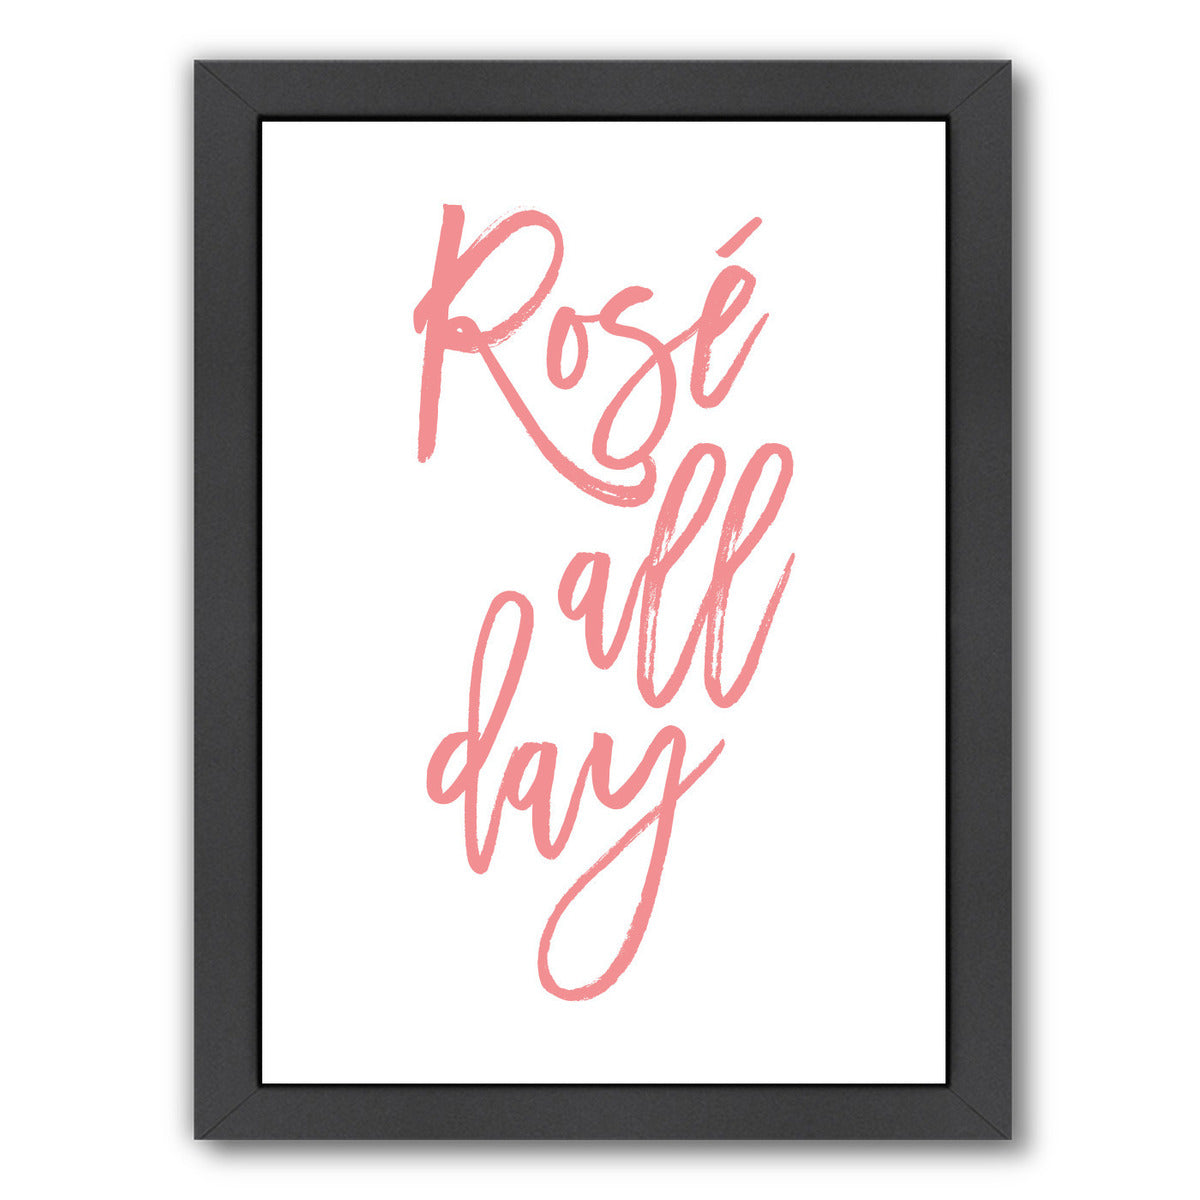 Rose All Day by Amy Brinkman Framed Print - Wall Art - Americanflat